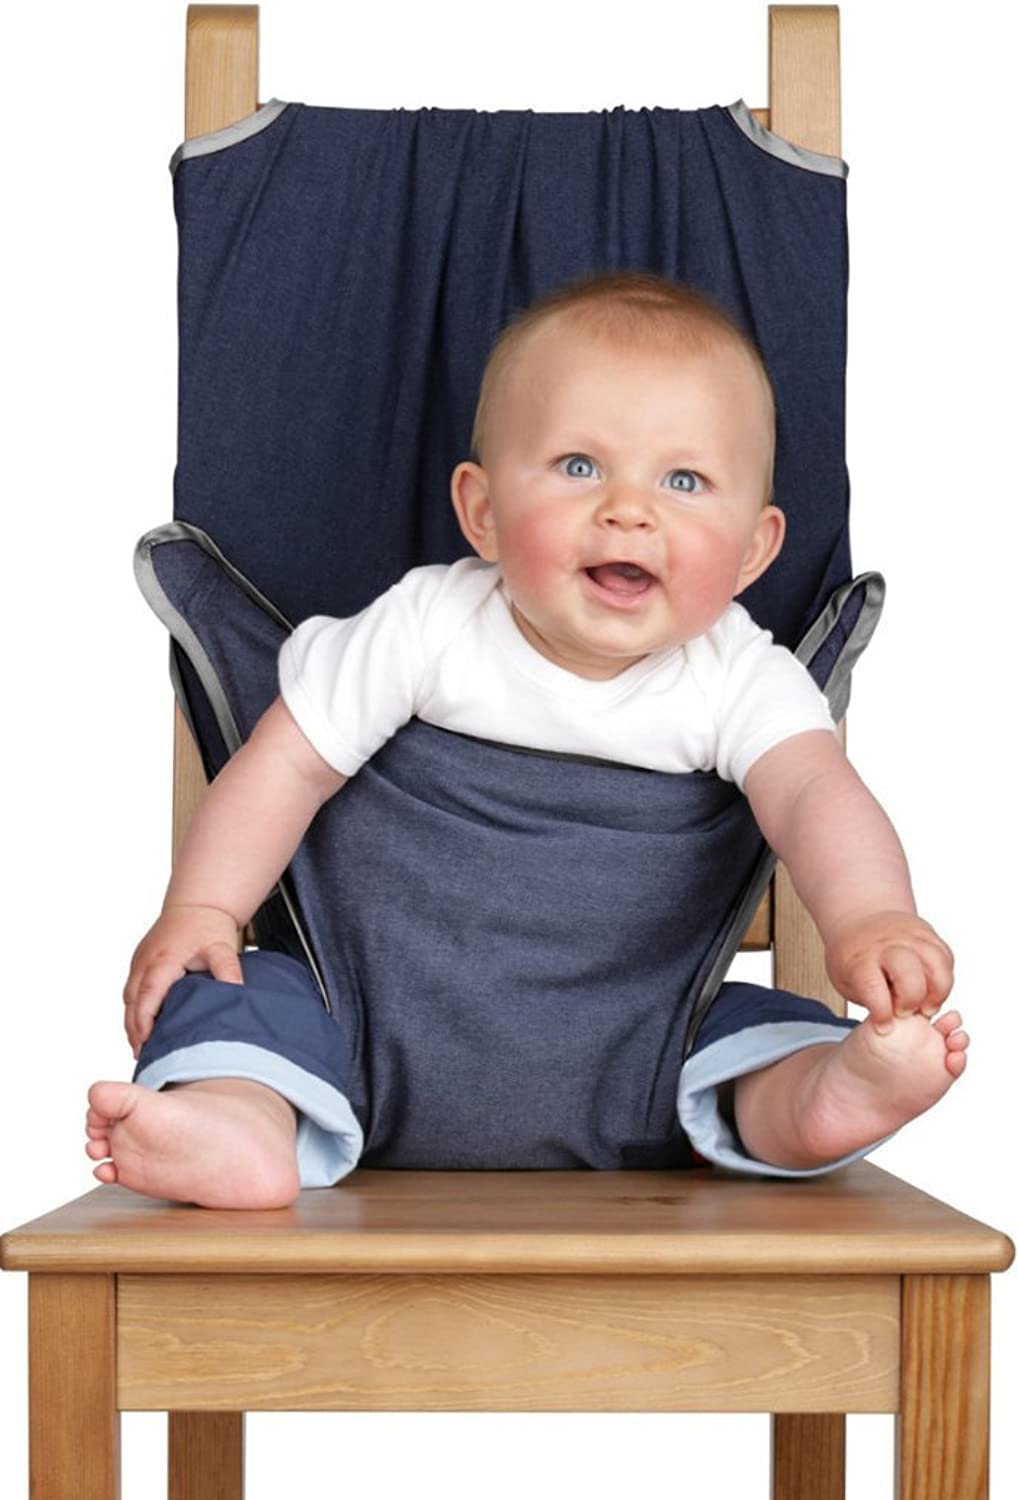 Totseat Chair Harness  The Washable and Squashable Travel High Chair in Denim